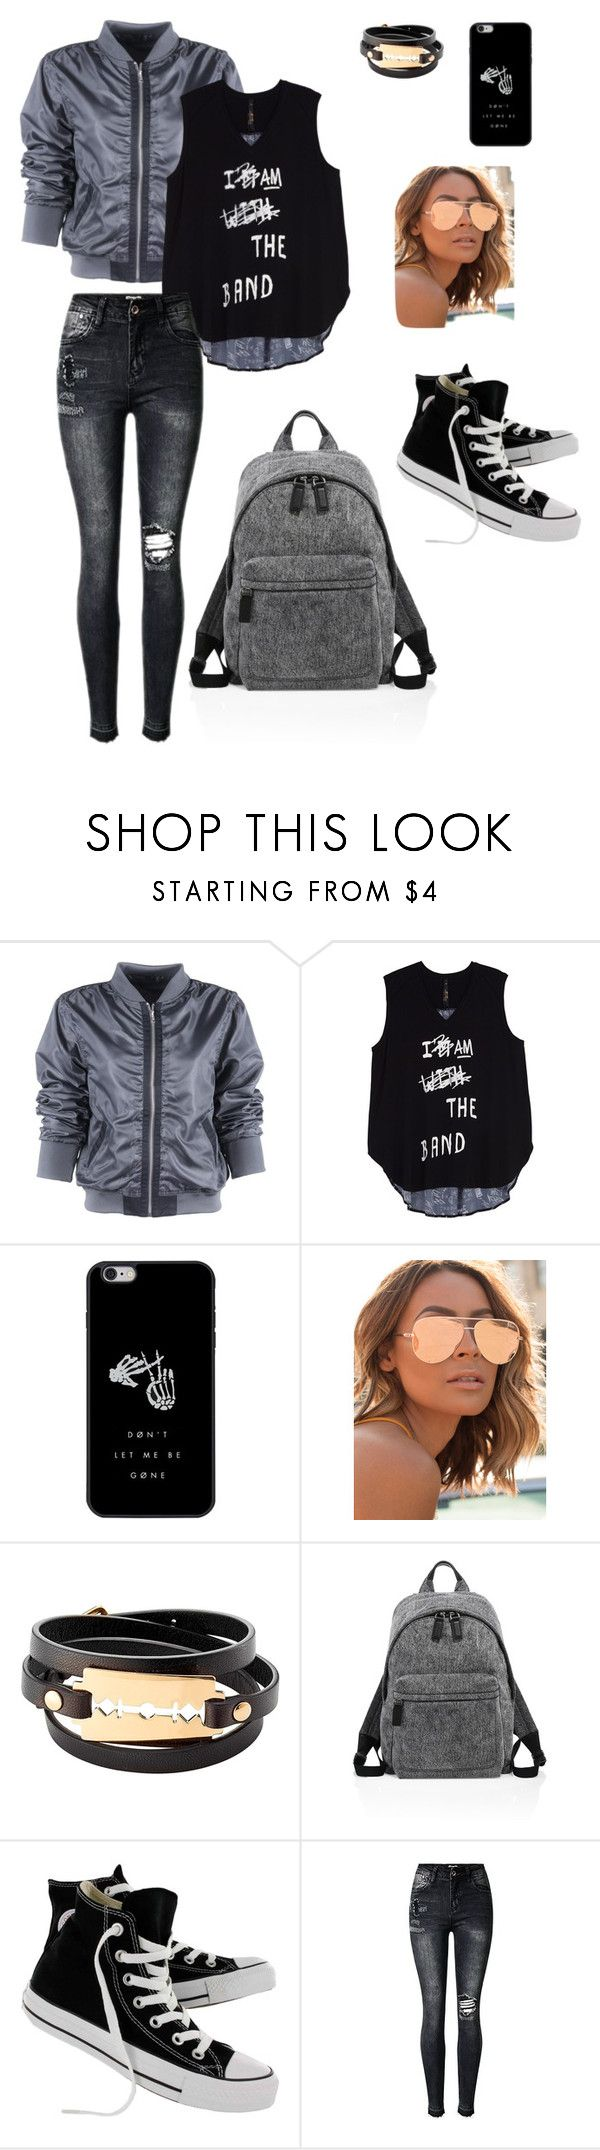 """""""Casual"""" by fannyfelia on Polyvore featuring Melissa McCarthy Seven7, Quay, McQ by Alexander McQueen, Marc Jacobs, Converse and plus size clothing"""